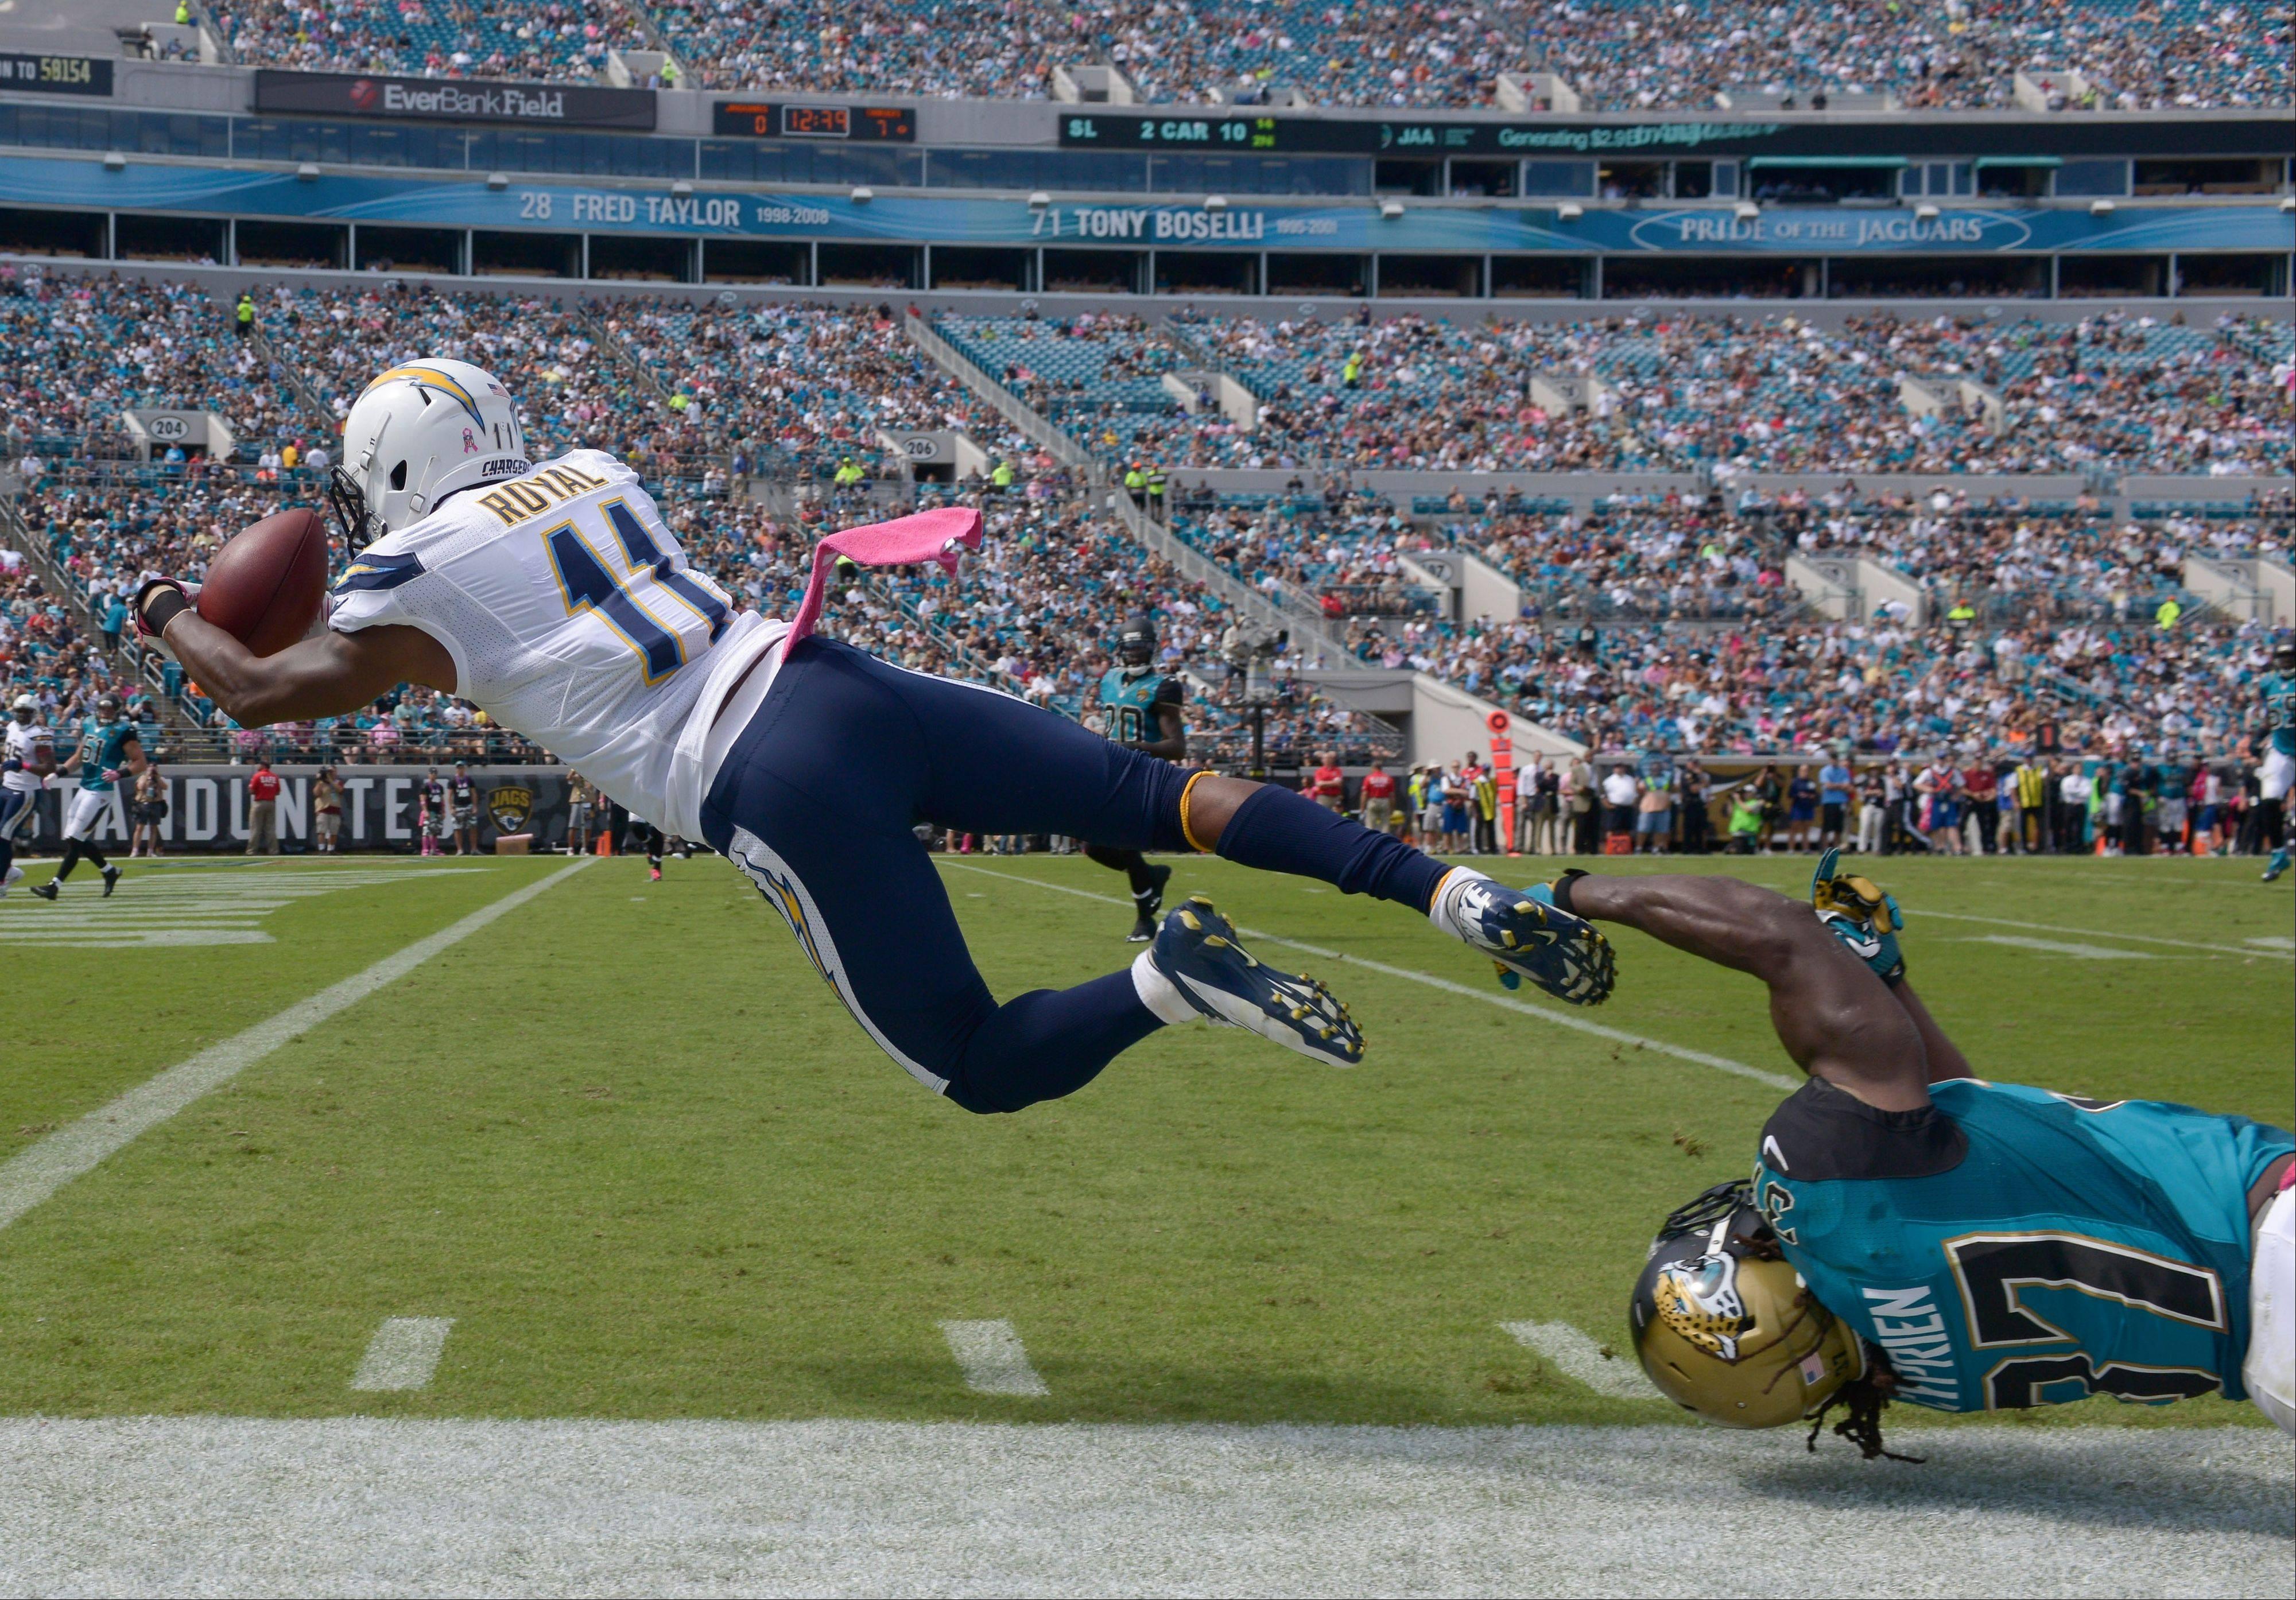 San Diego Chargers wide receiver Eddie Royal (11) catches a 27-yard pass for a touchdown as Jacksonville Jaguars strong safety Johnathan Cyprien, lower right, can�t stop him during the first half of an NFL football game in Jacksonville, Fla., Sunday, Oct. 20, 2013.